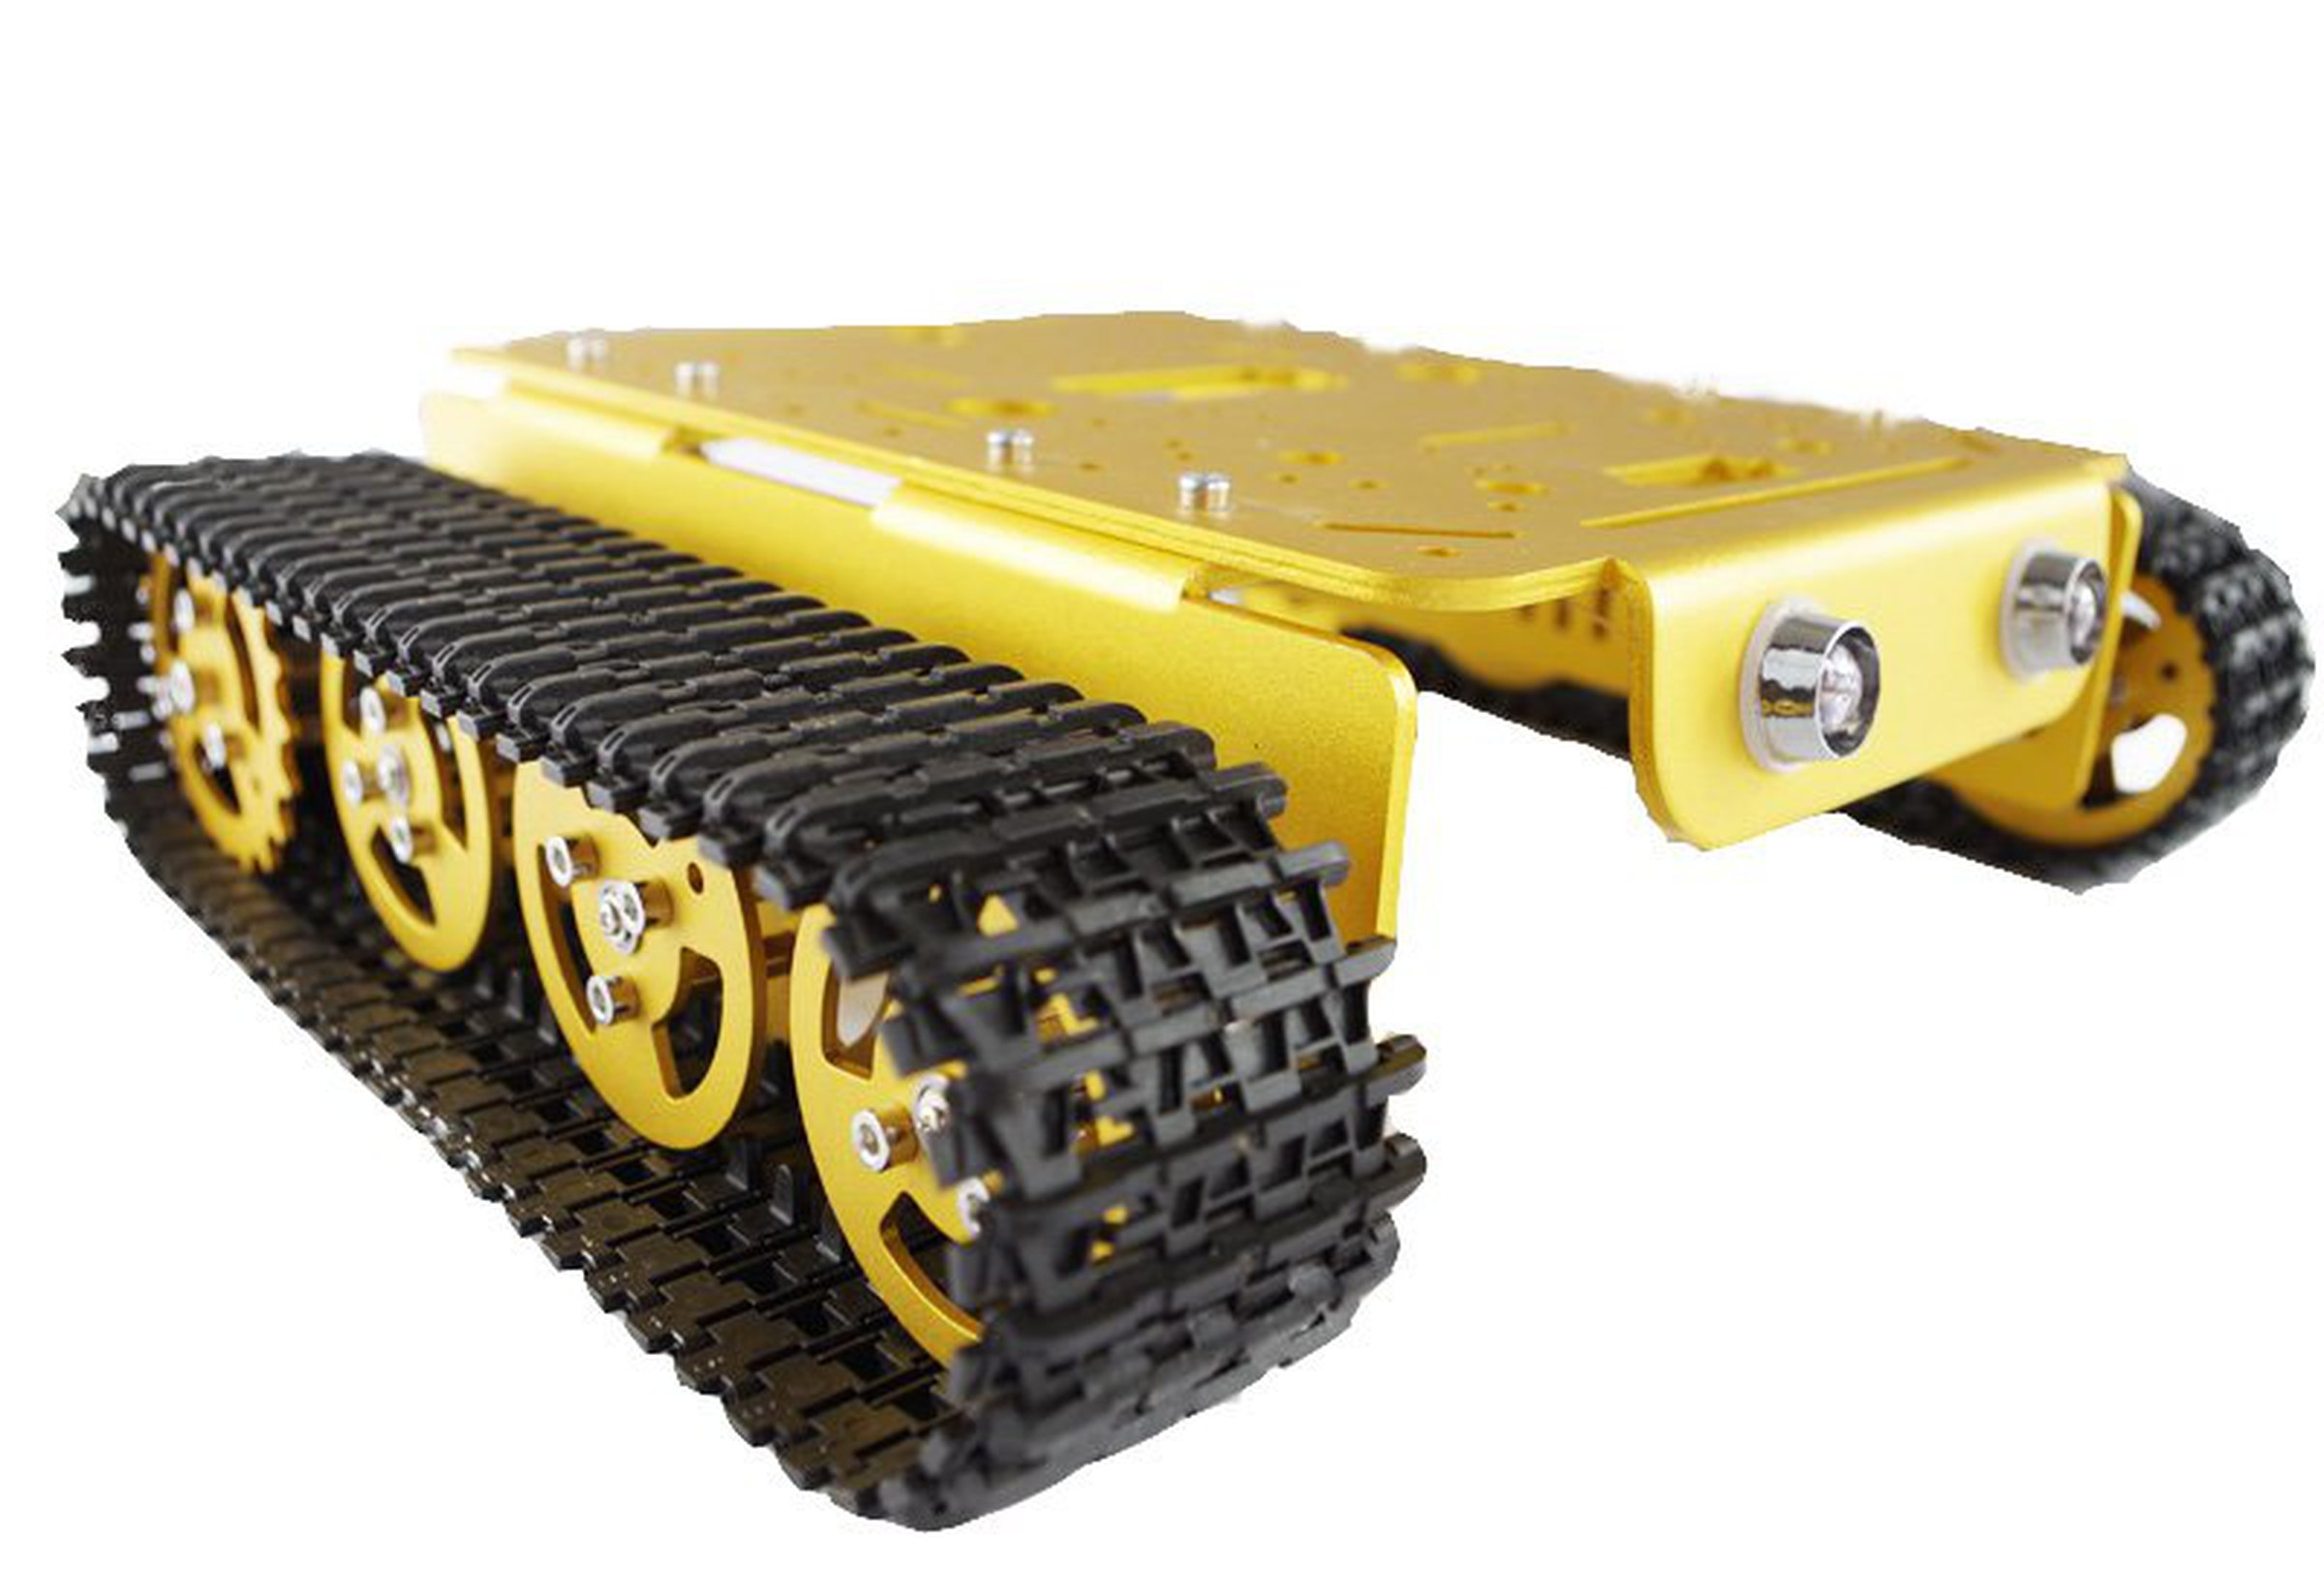 T metal robot tank car chassis from doit am on tindie